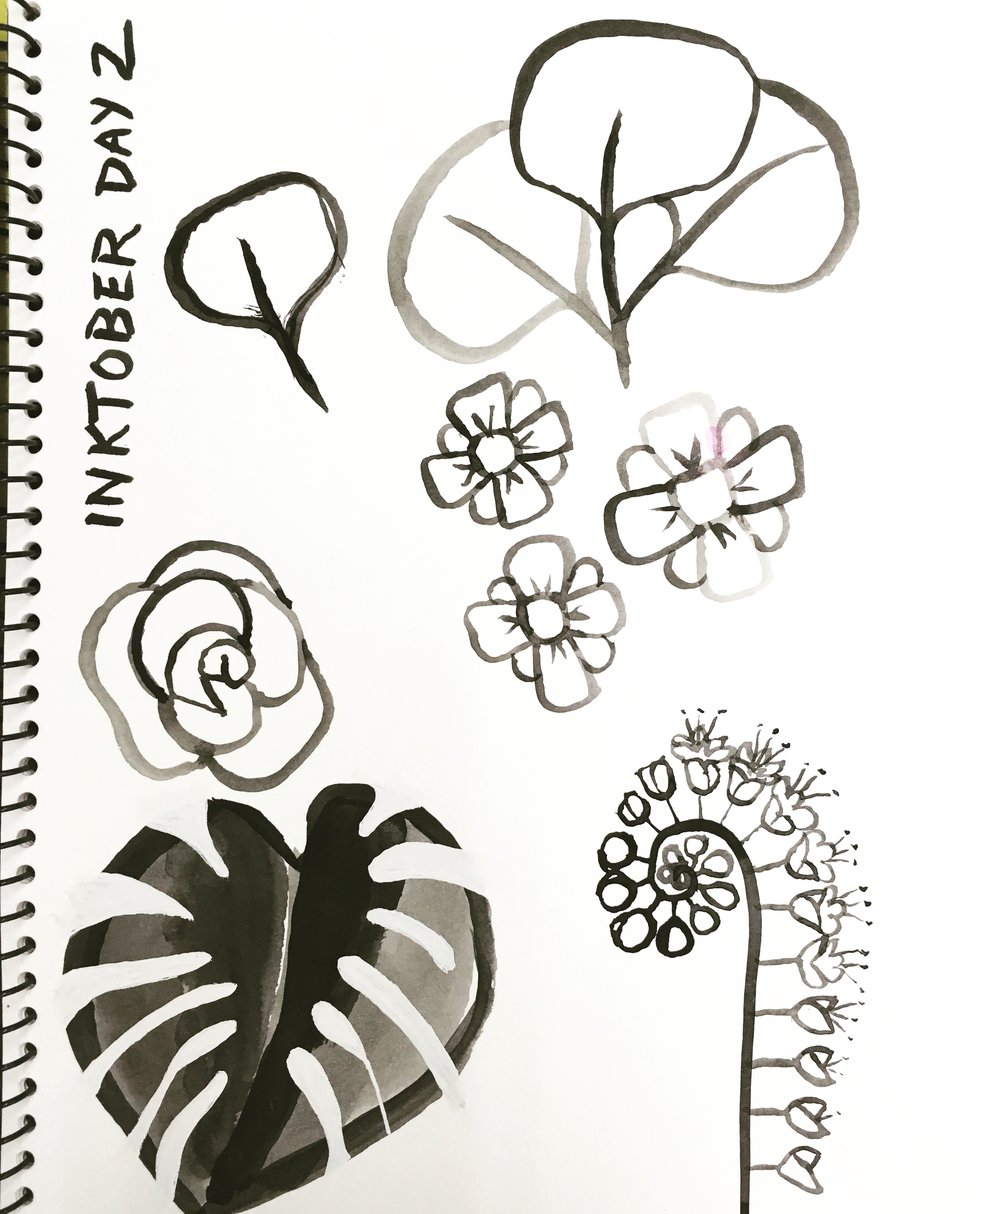 Day 2, brush and ink © Denise Ortakales